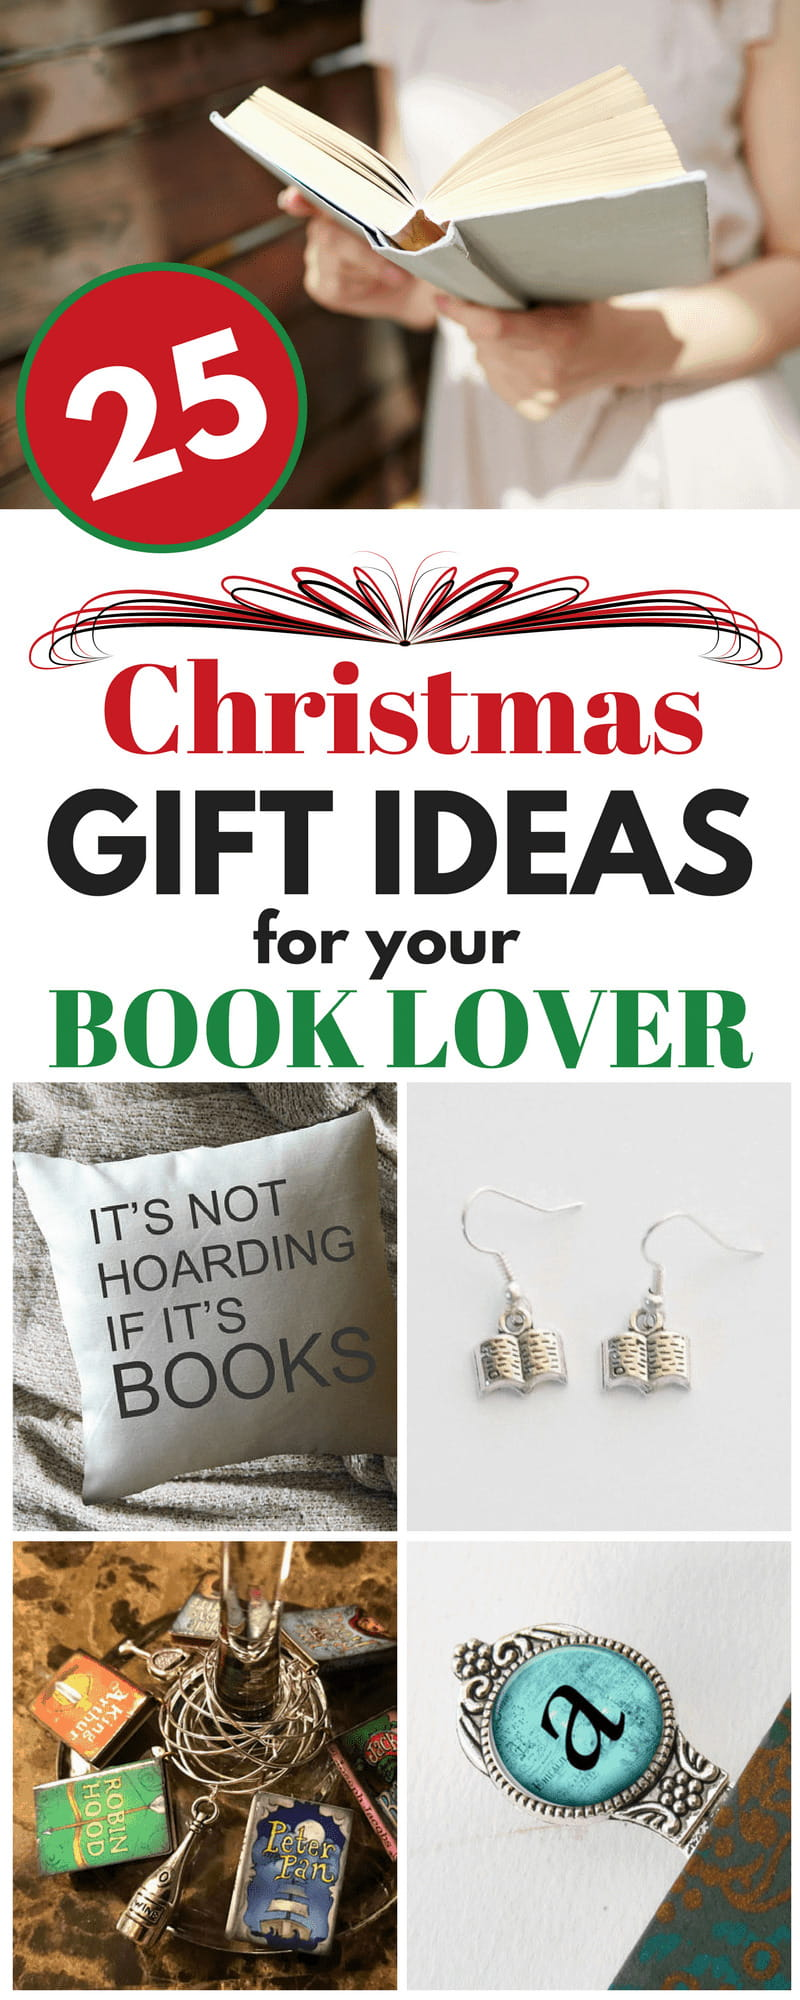 Do you have a book lover on your Christmas list, but no idea what to get them? Check out these 25 Christmas Gift Ideas for Your Book Lover.